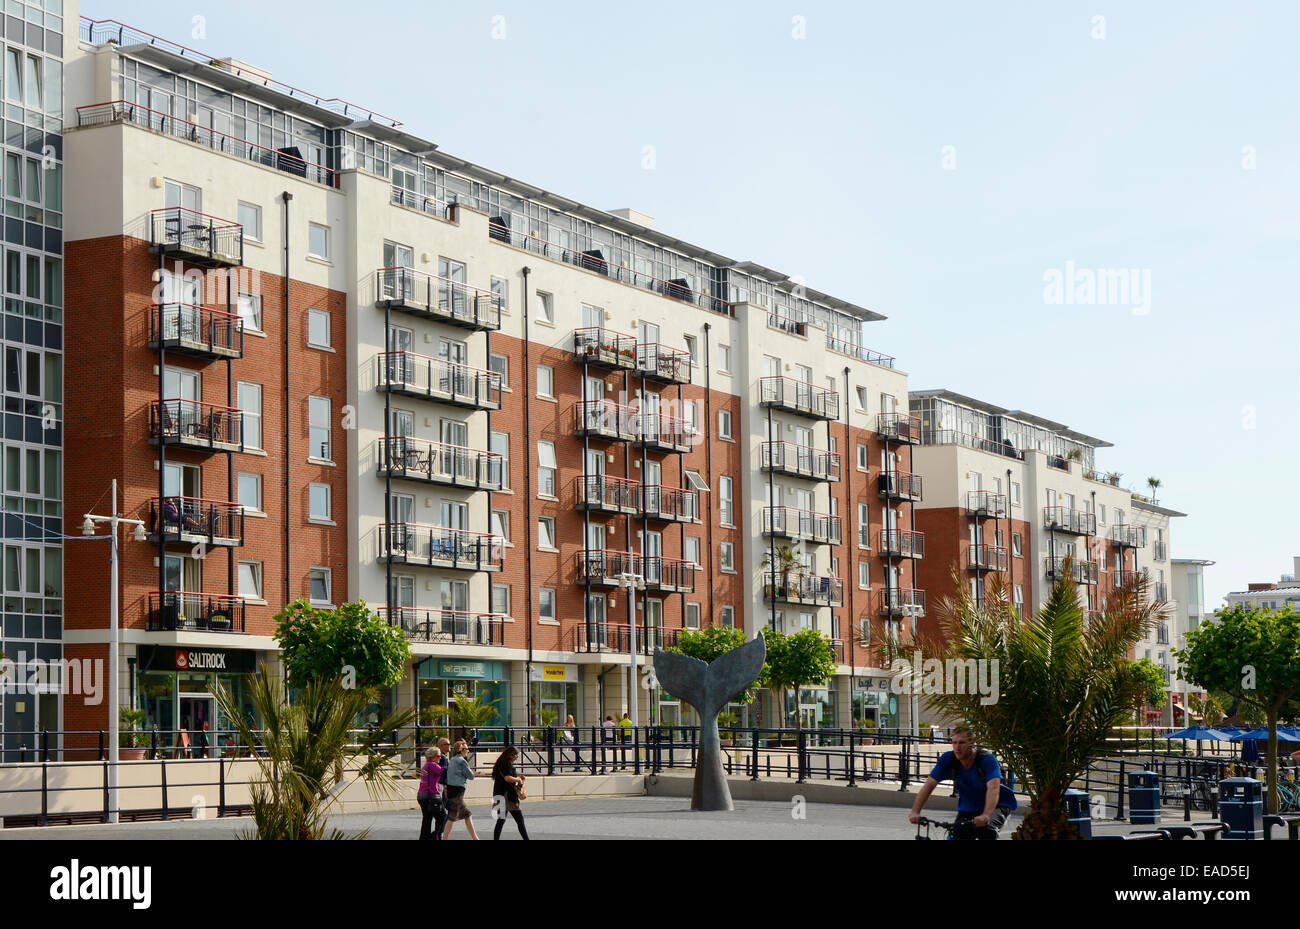 Charming Modern Apartment Buildings Of Steel, Brick And Glass At Gunwharf Quays  Shopping Mall In Portsmouth. Hampshire. England. Shops Be